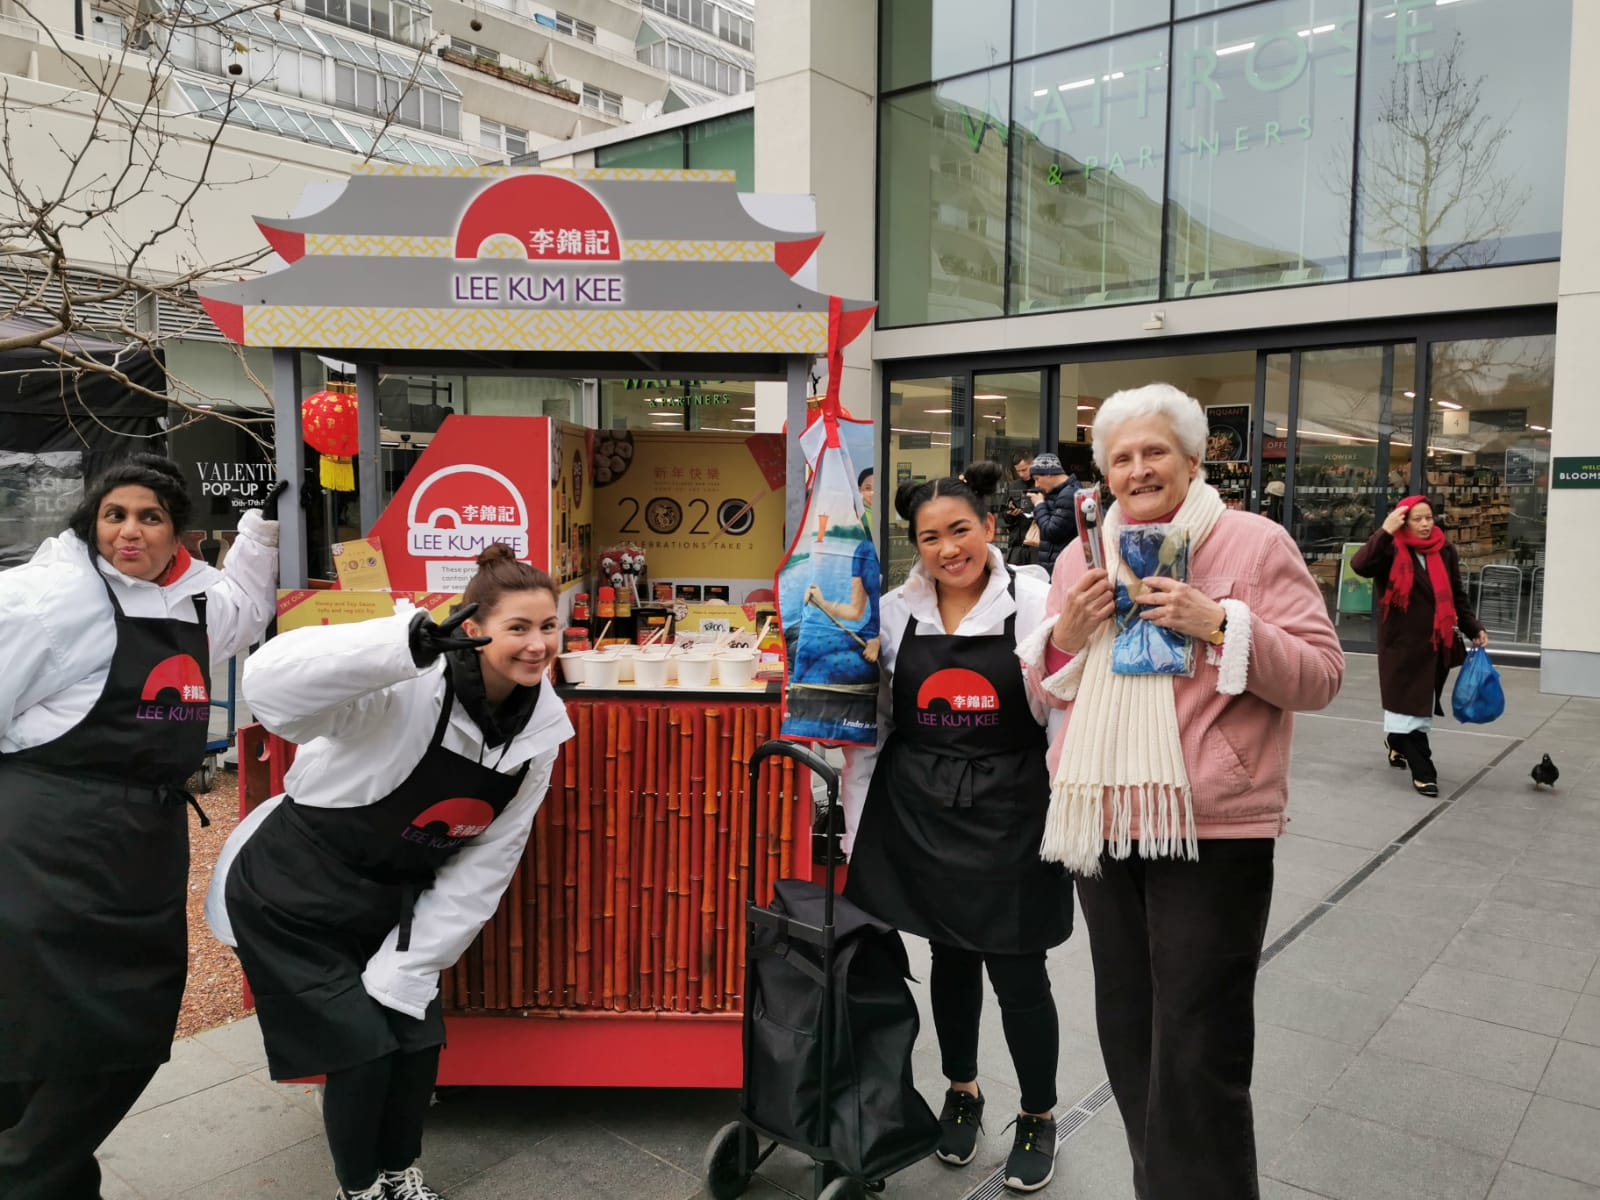 Experiential Marketing With Lee Kum Kee Cereal in Waitrose Supermarkets, shopper marketing, Waitrose shopper agency, retail marketing agency, examples